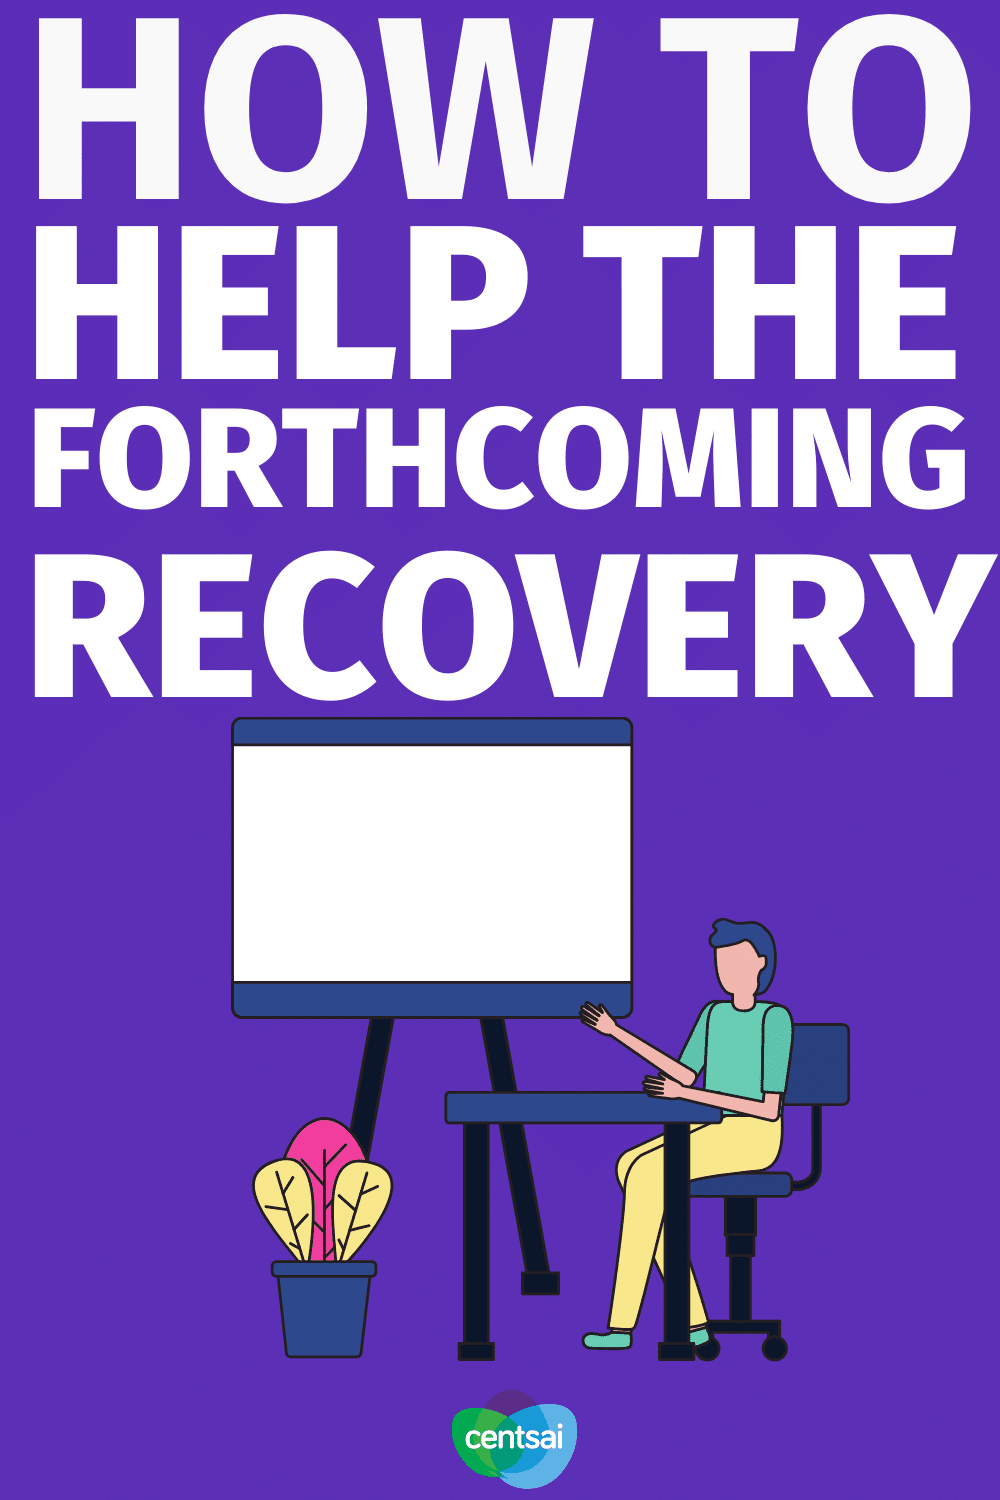 How to Help the Forthcoming Recovery